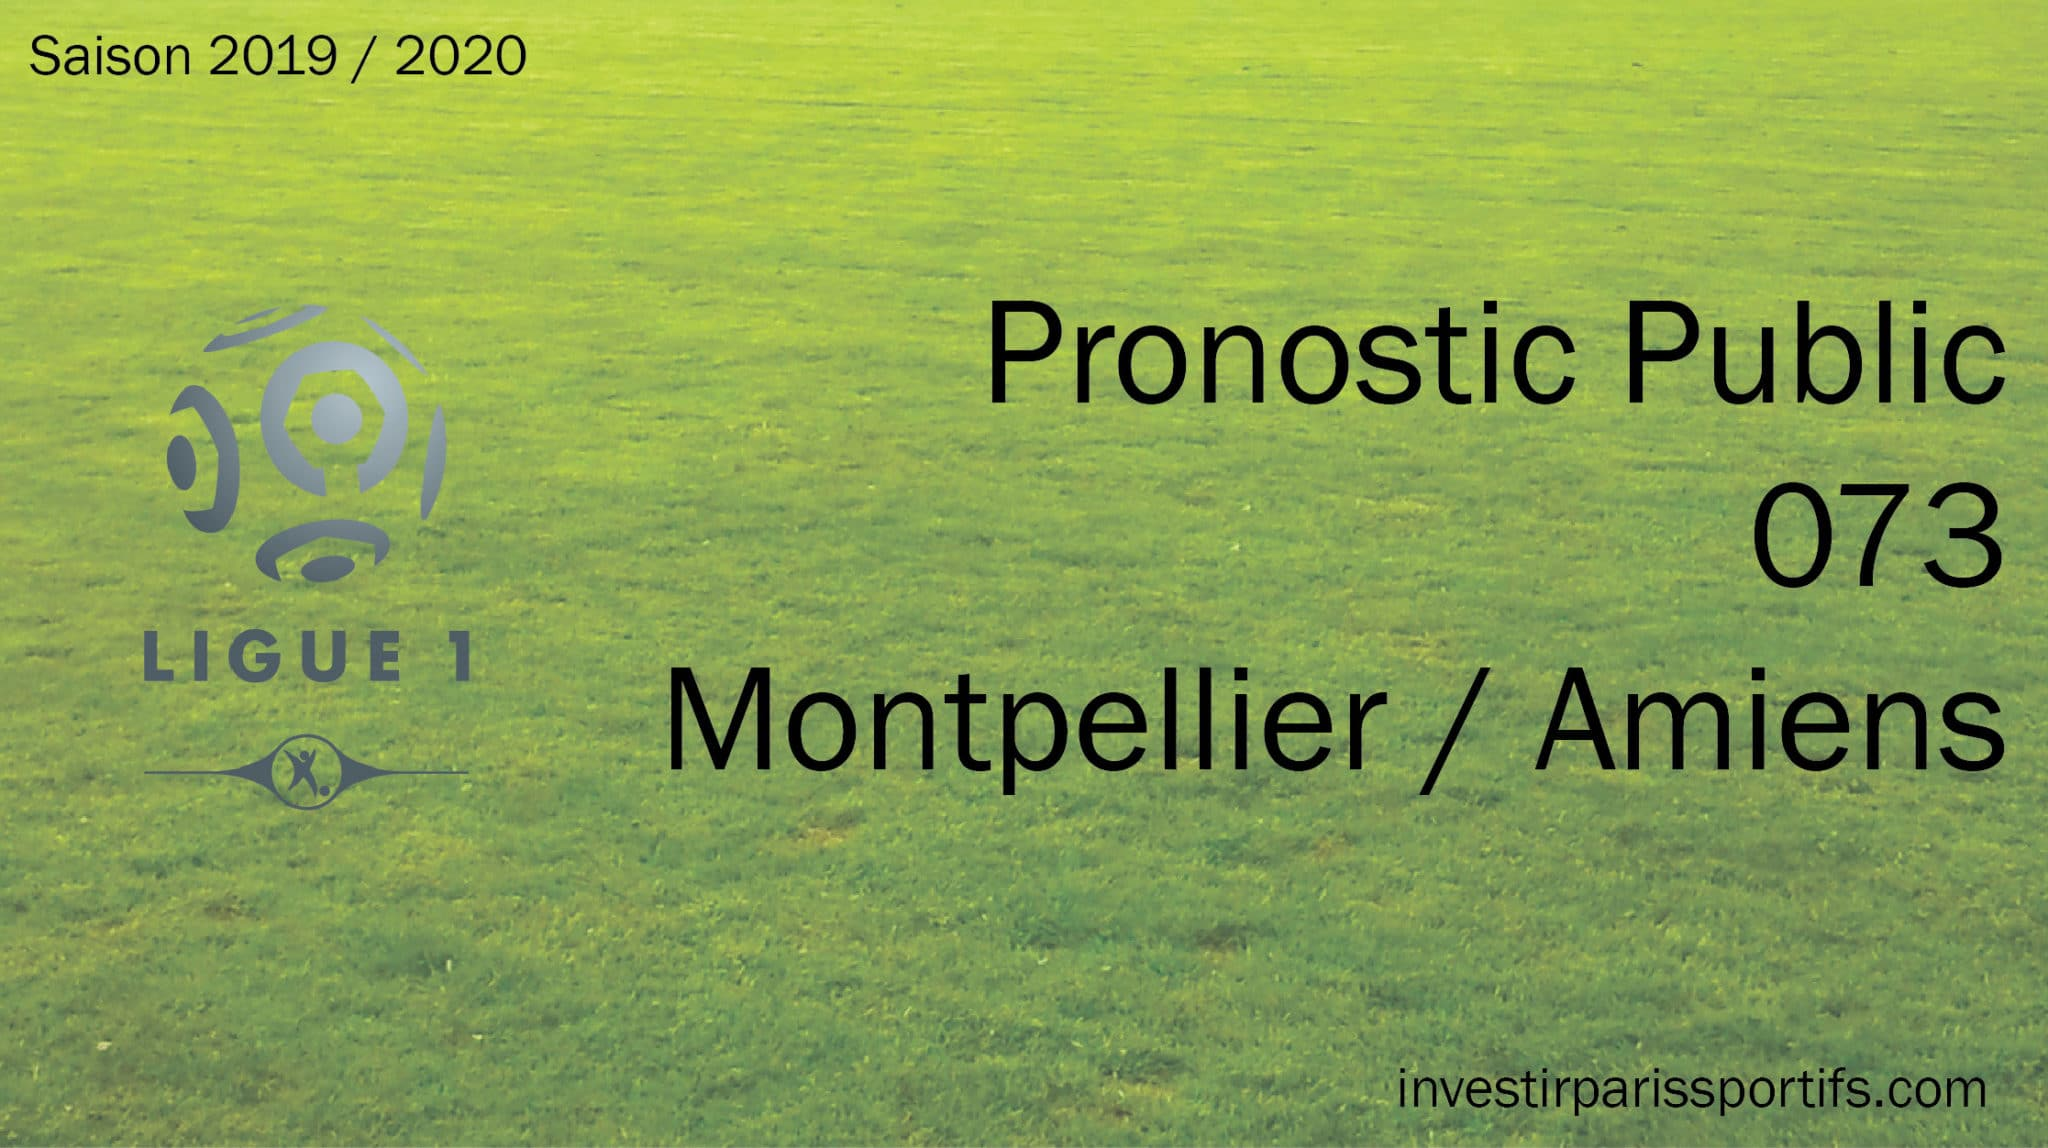 Pronostic 073 – Montpellier / Amiens – Ligue 1